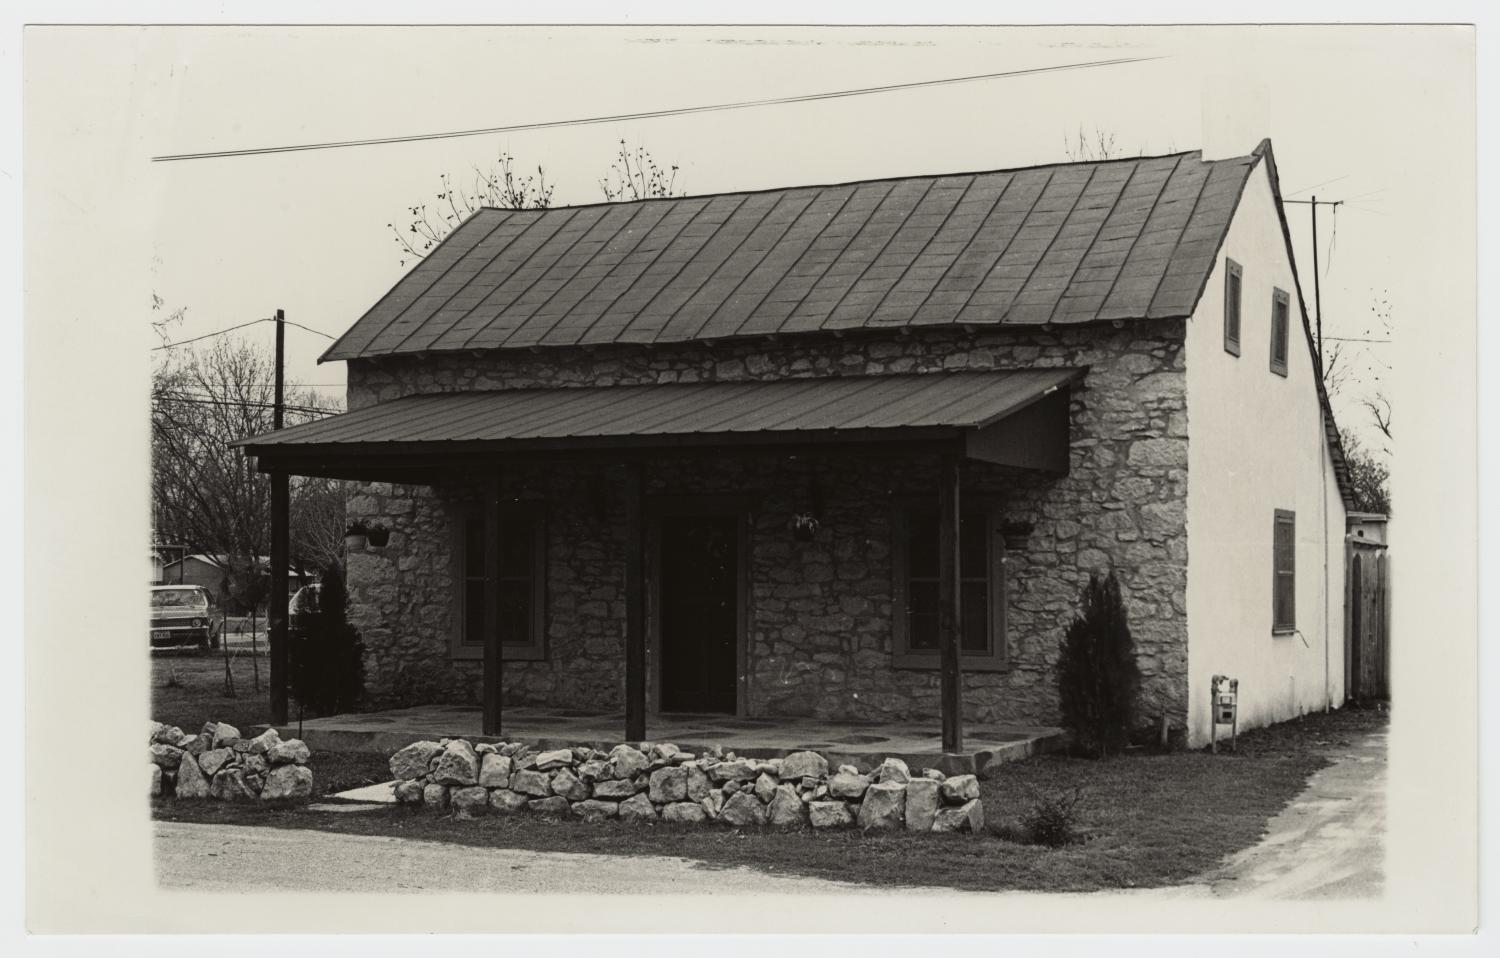 [Cordier-Tschirhart-Seal House Photograph #1]                                                                                                      [Sequence #]: 1 of 2